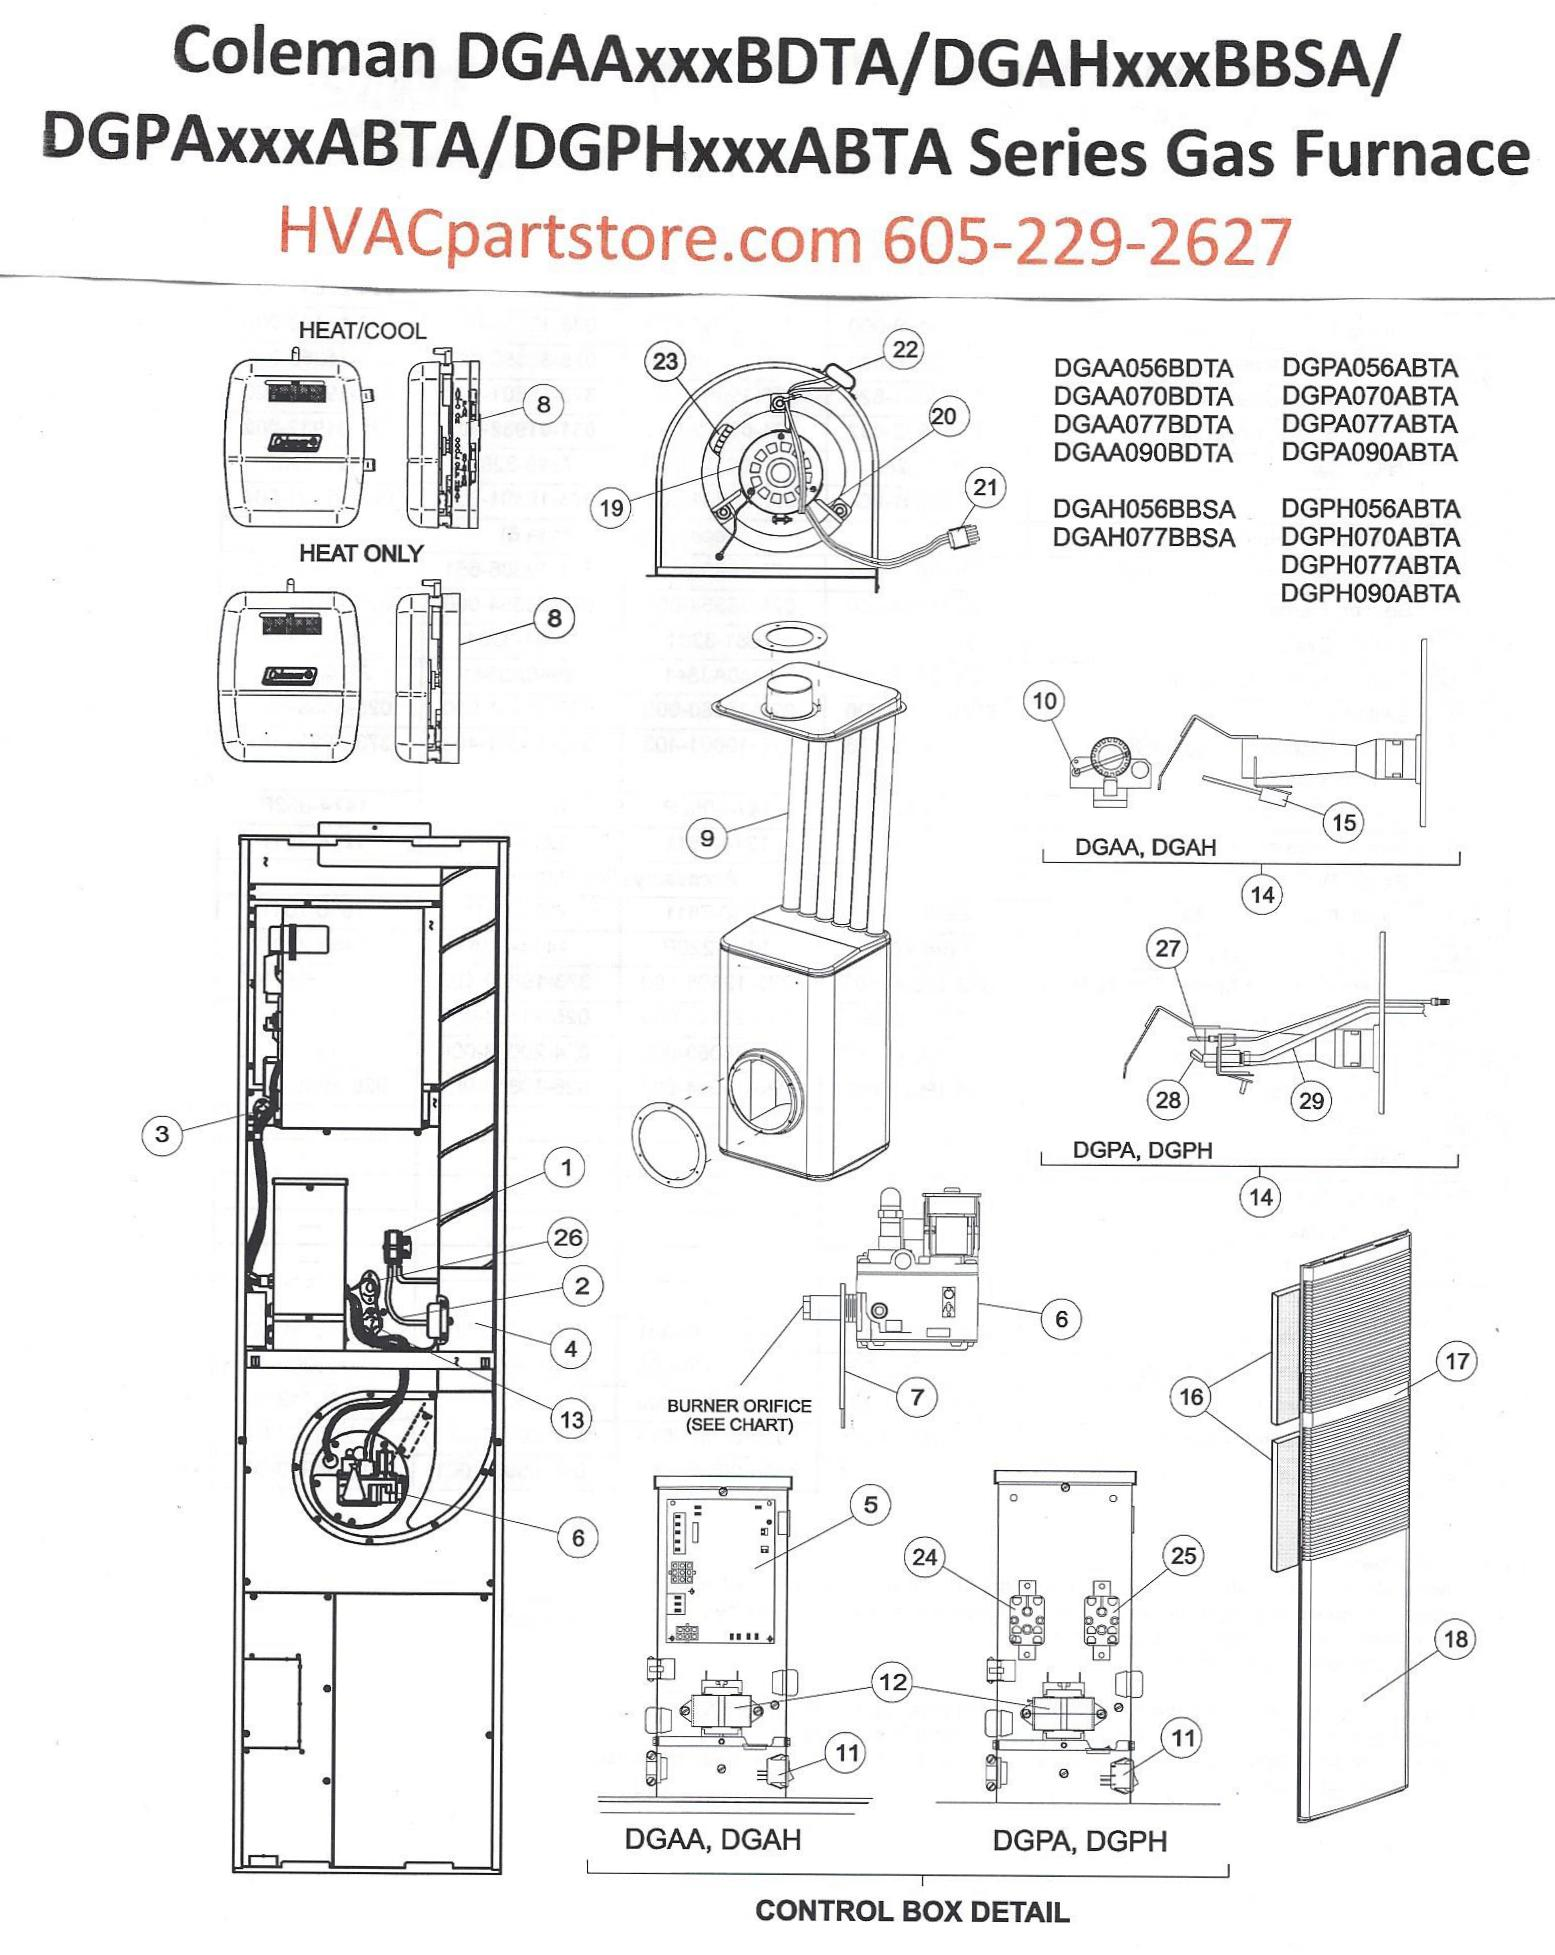 coleman digital thermostat 9430 338 wiring diagram 50 Coleman Evcon Mobile Home Furnaces Lennox Furnace Wiring Diagram Model